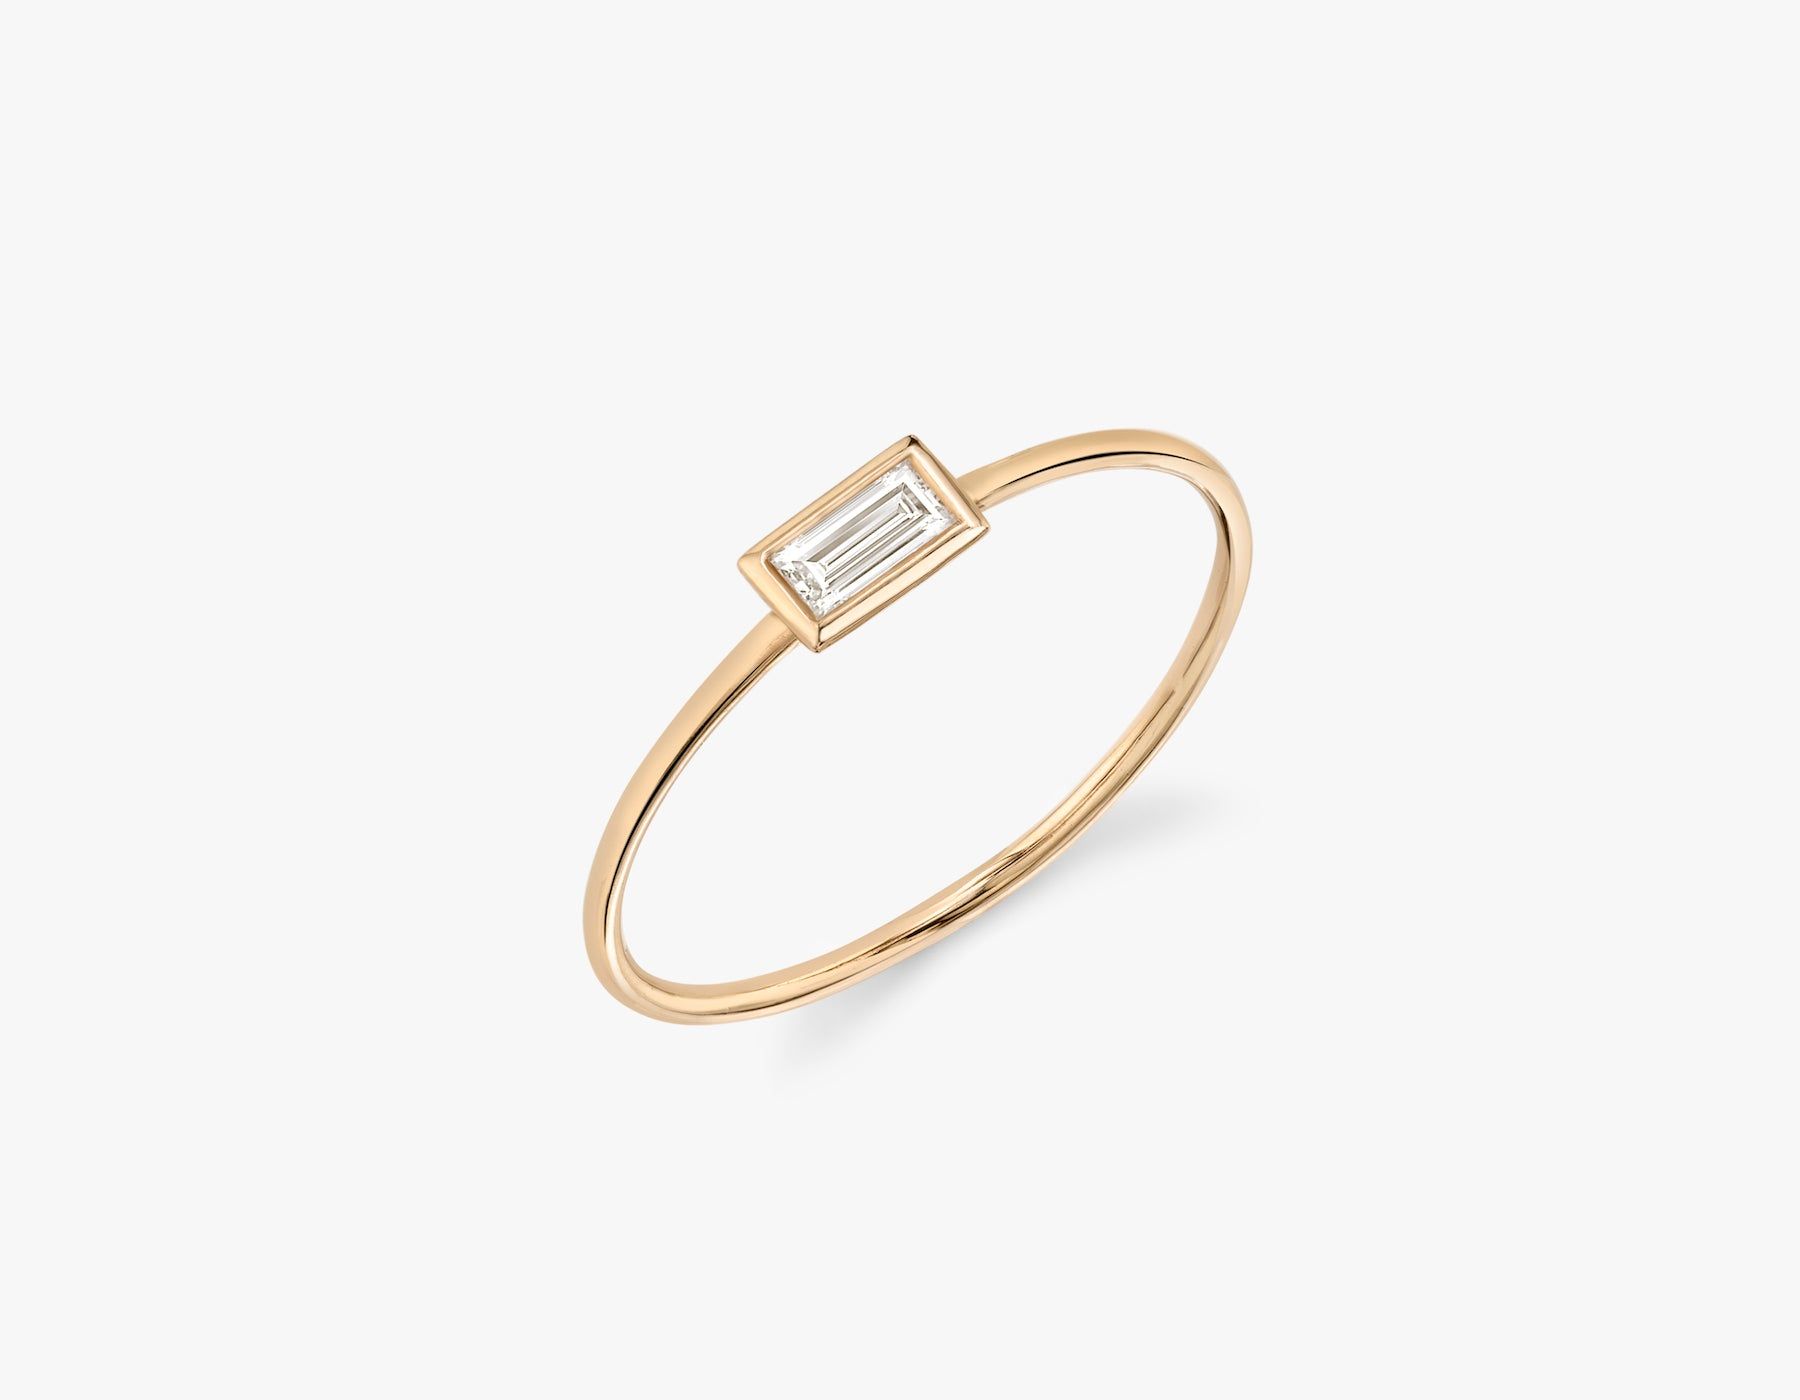 Vrai simple minimalist Baguette Diamond Bezel Ring, 14K Rose Gold